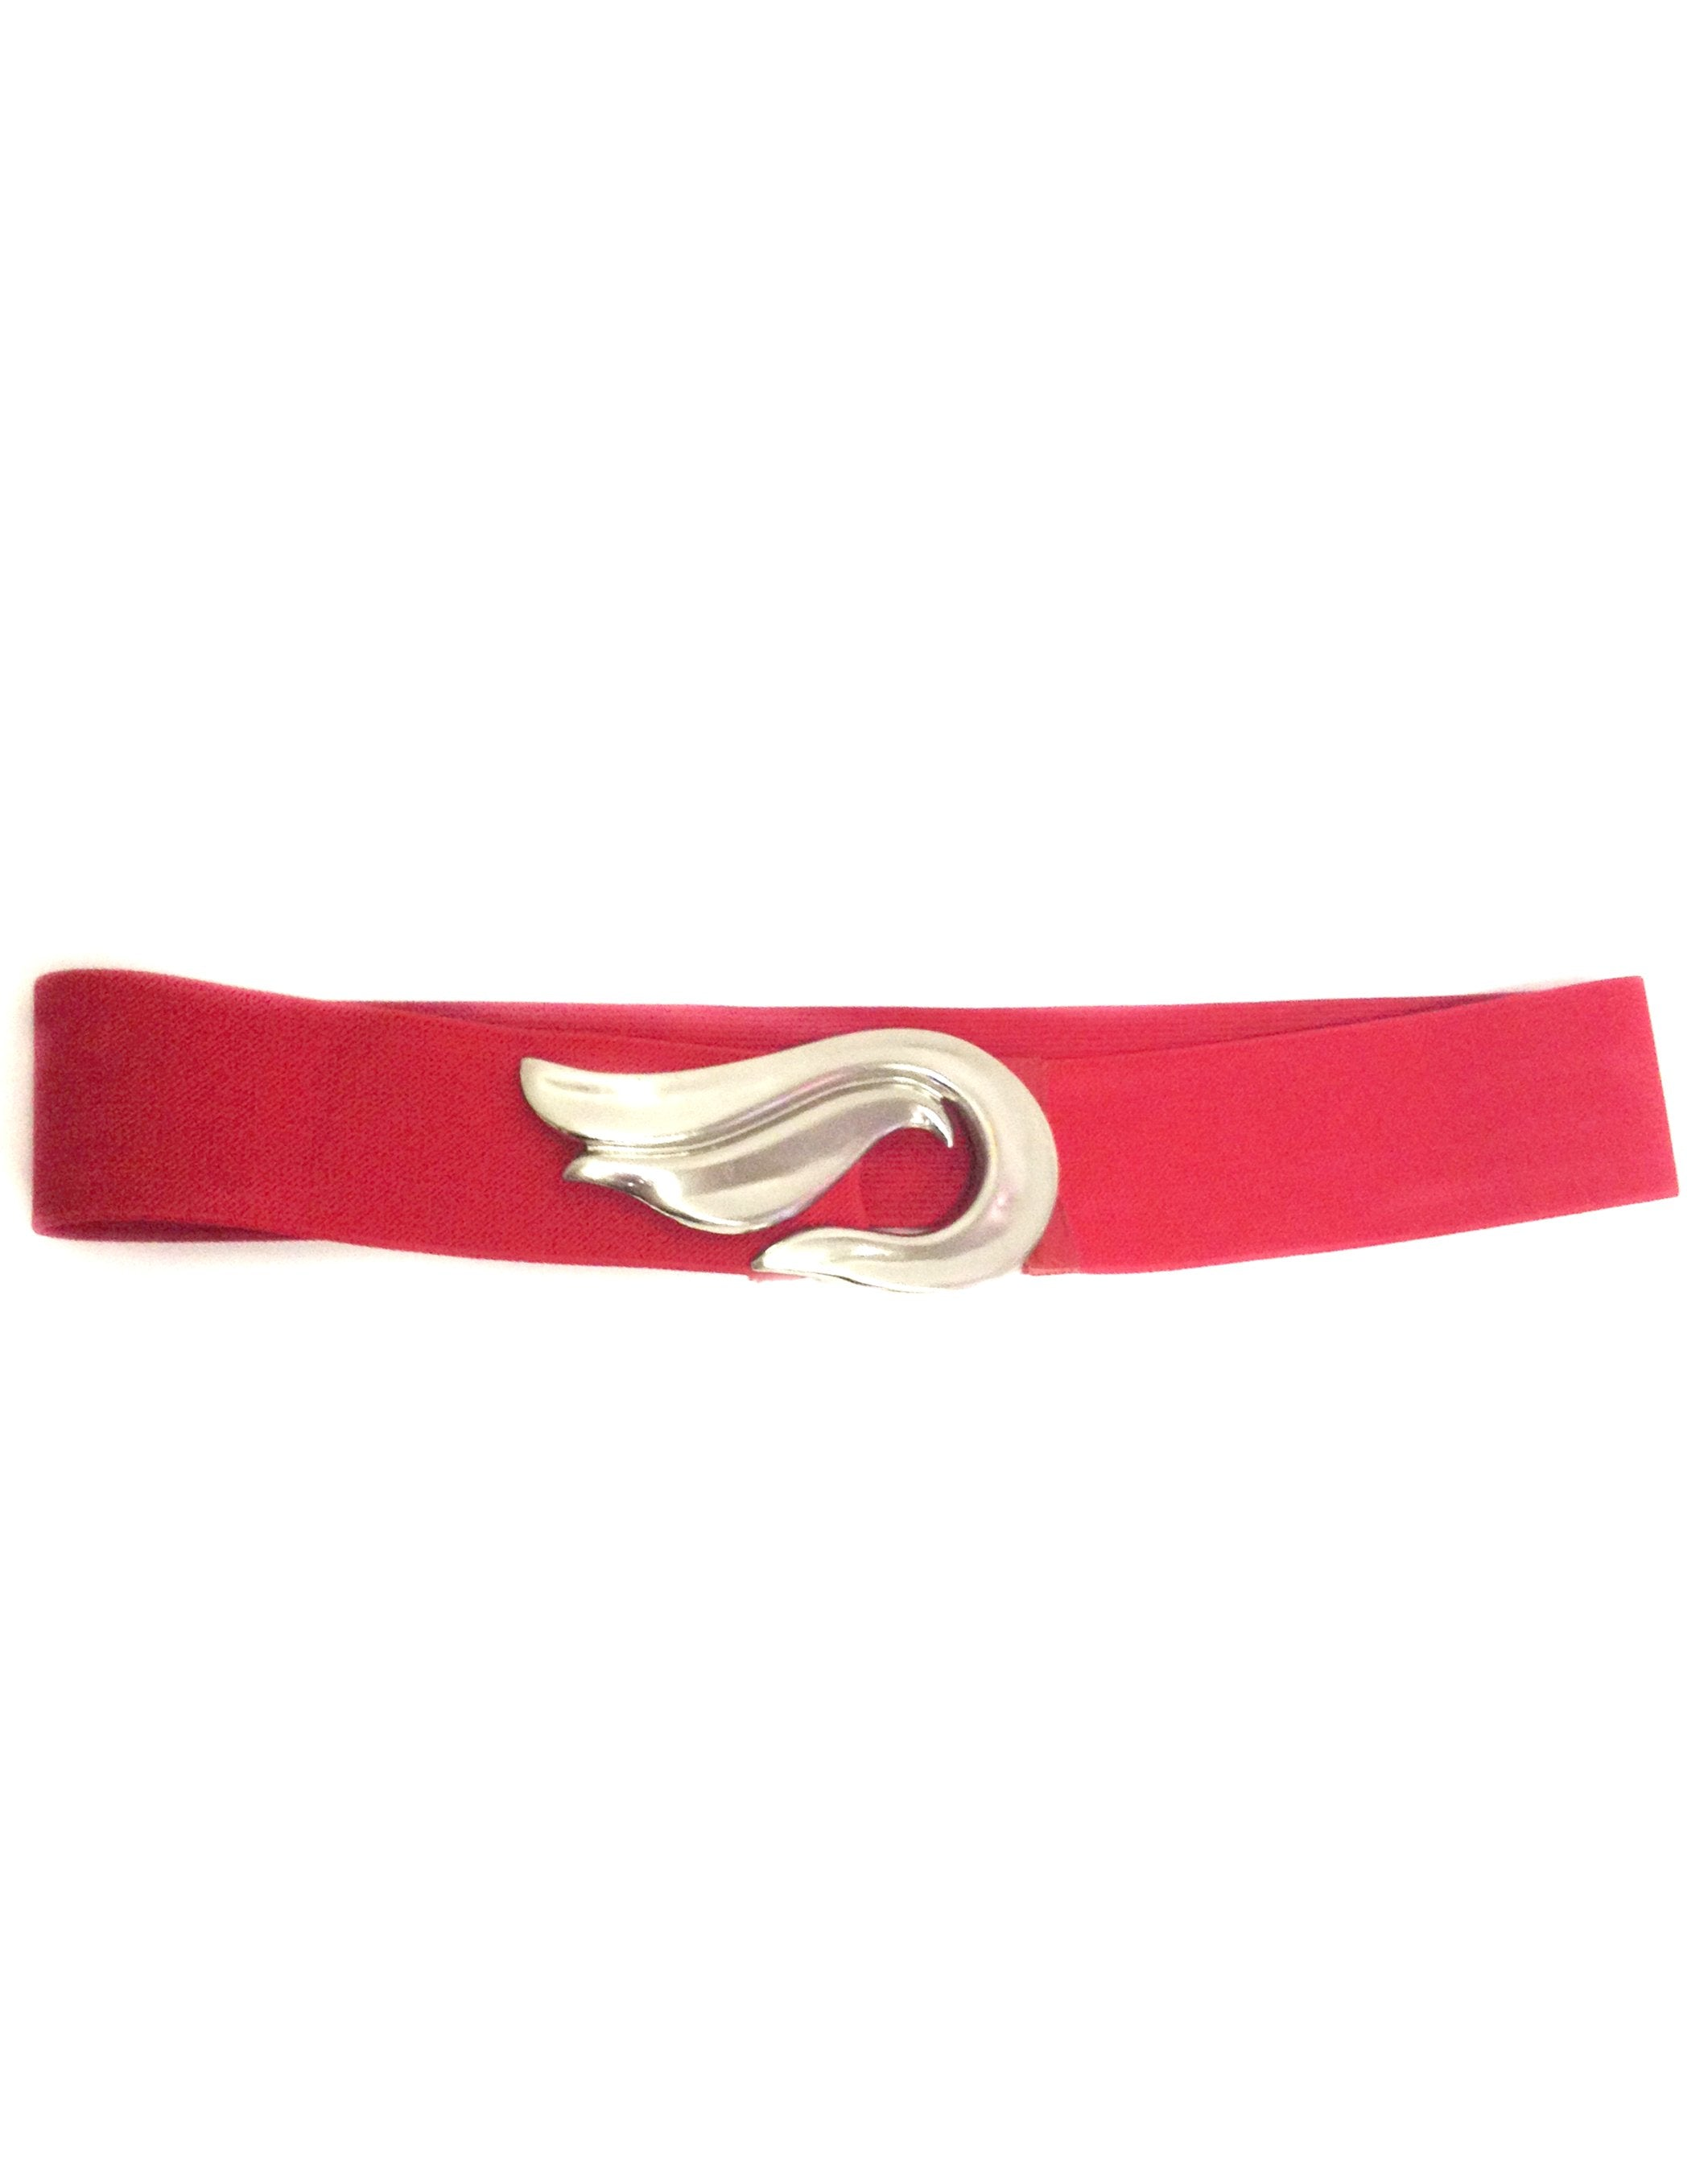 Vintage Red Elastic Stretch Cinch Belt